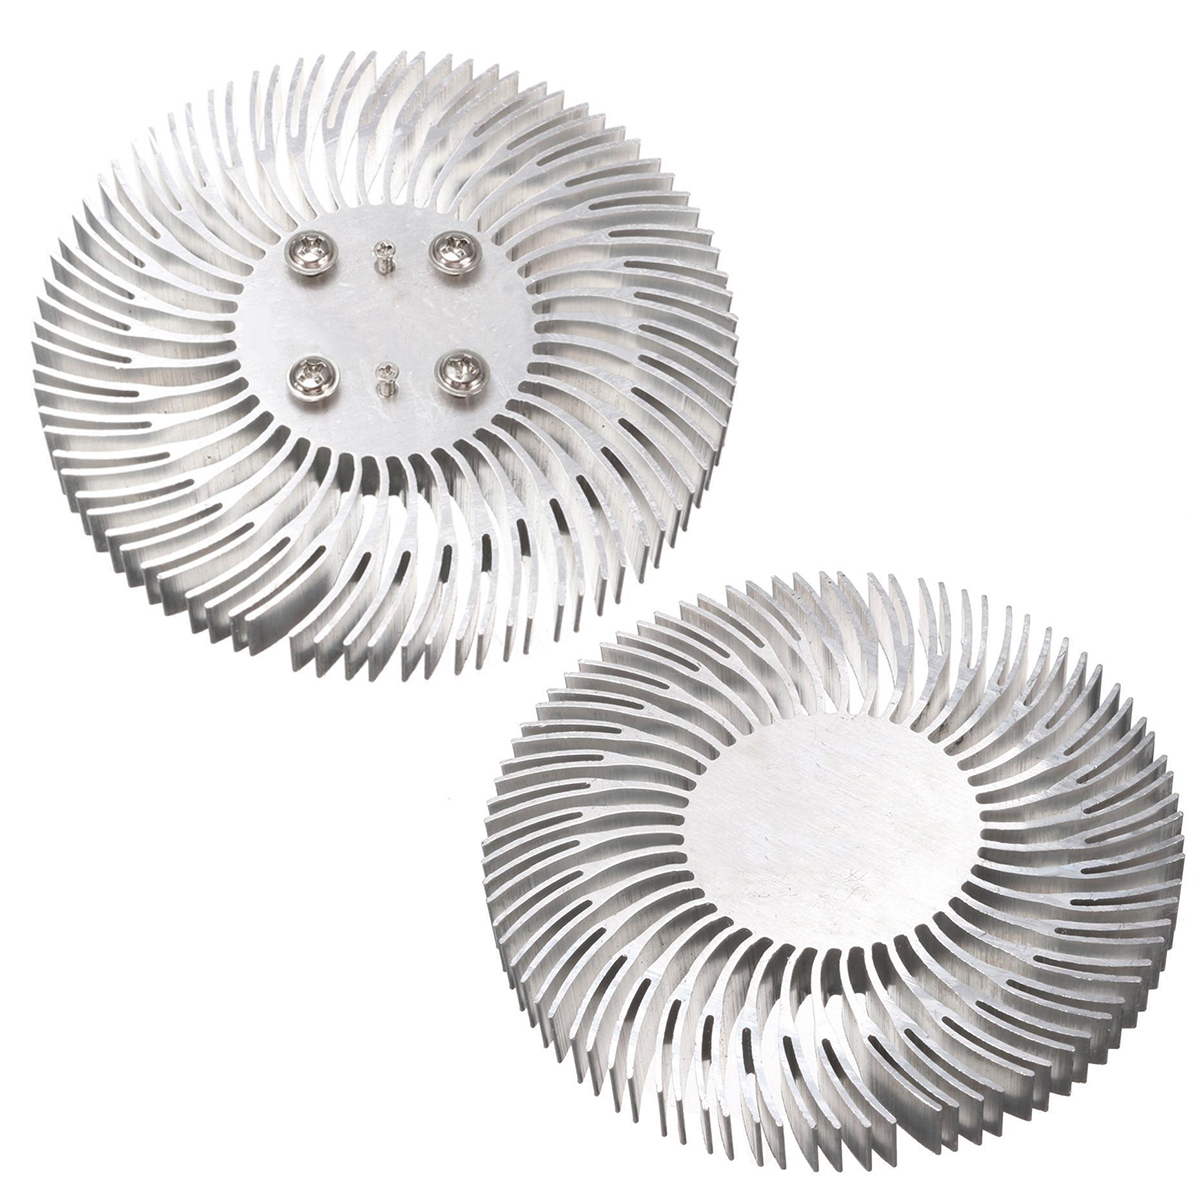 High Quality Aluminum Heatsink Radiator 90*10mm For 10W High Power LED Lamp Light Round Spiral Heat Sink With Screws